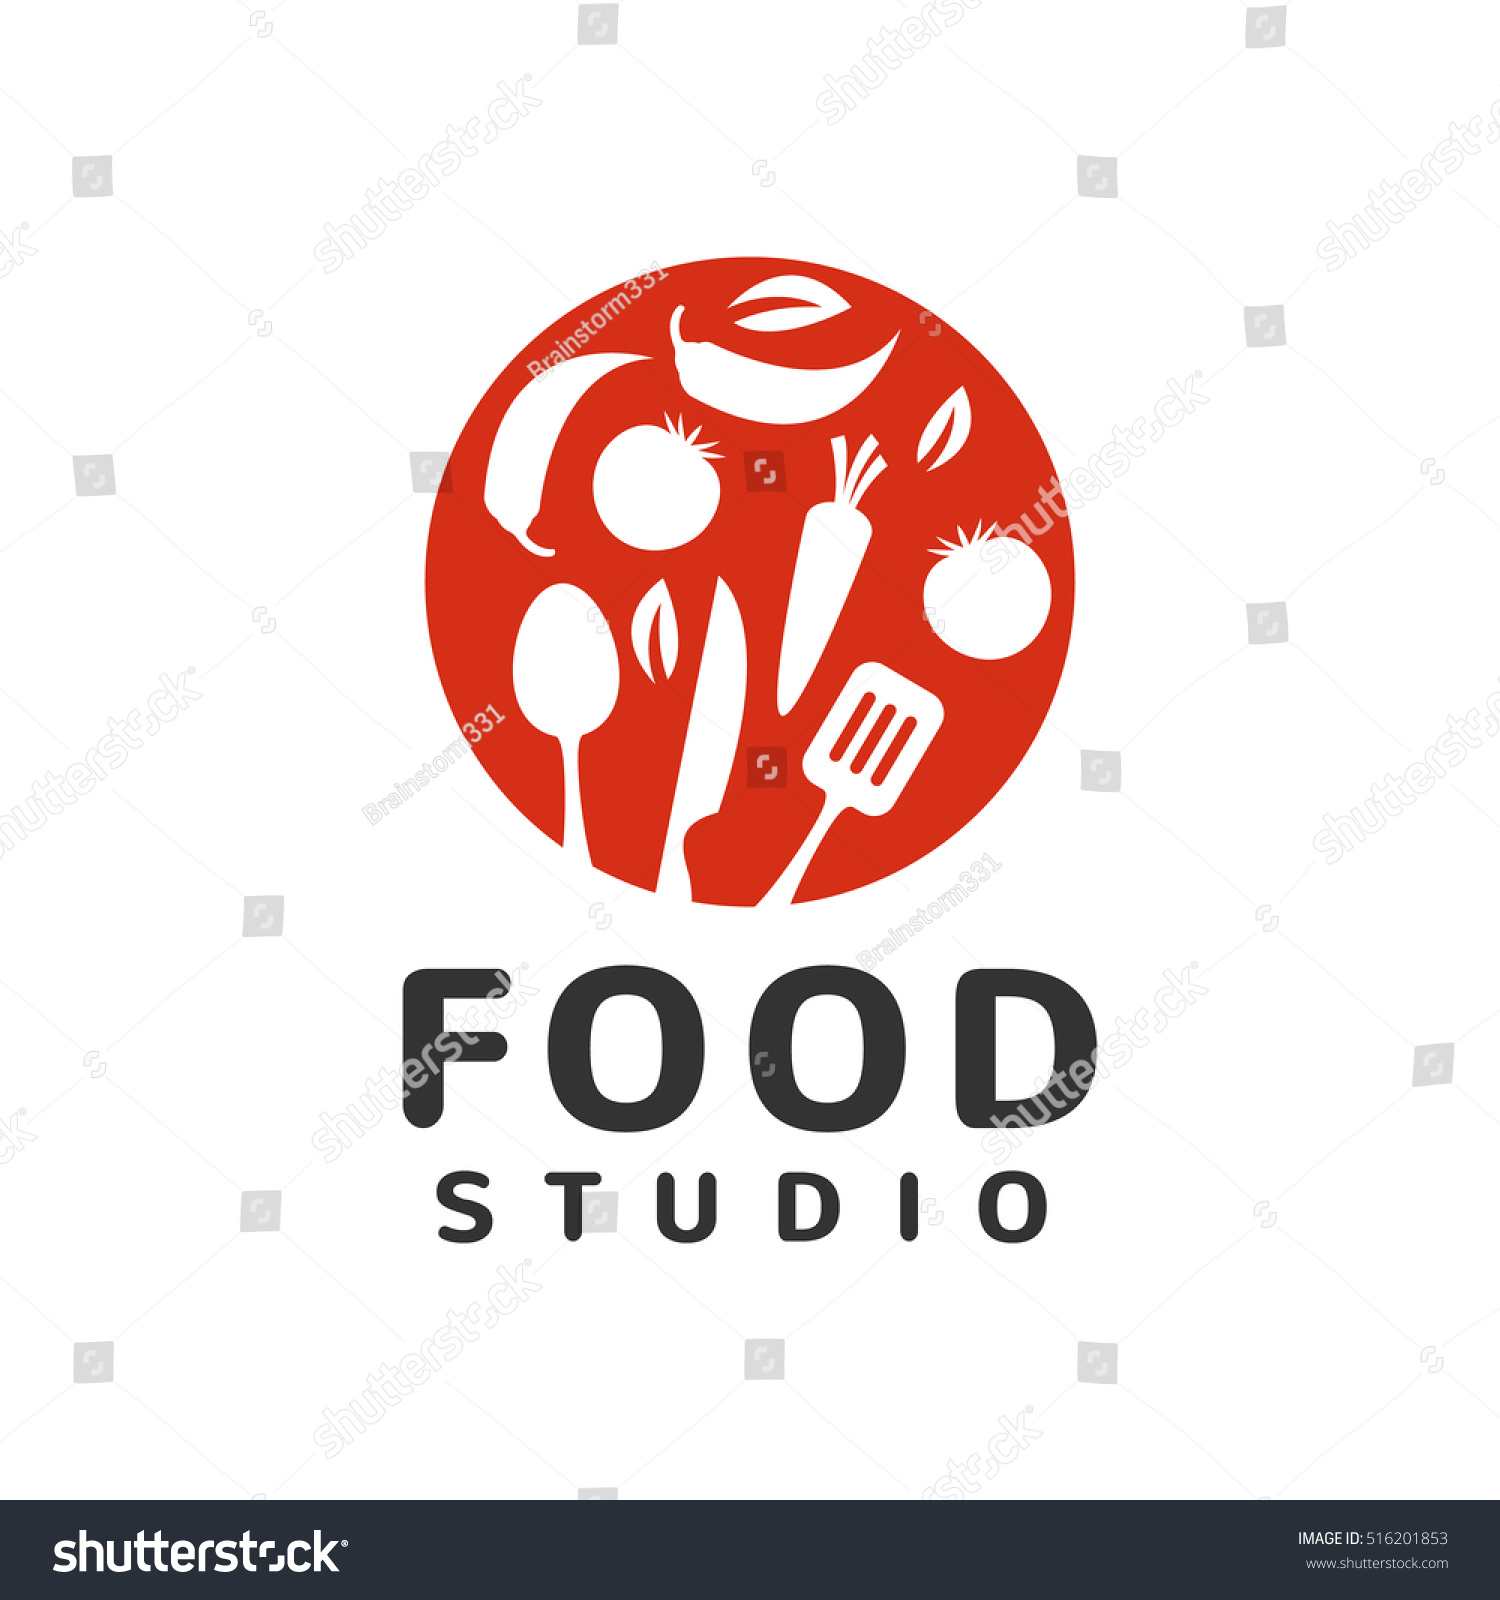 Restaurant Kitchen Toolste food studio logo kitchen tools food stock vector 516201853